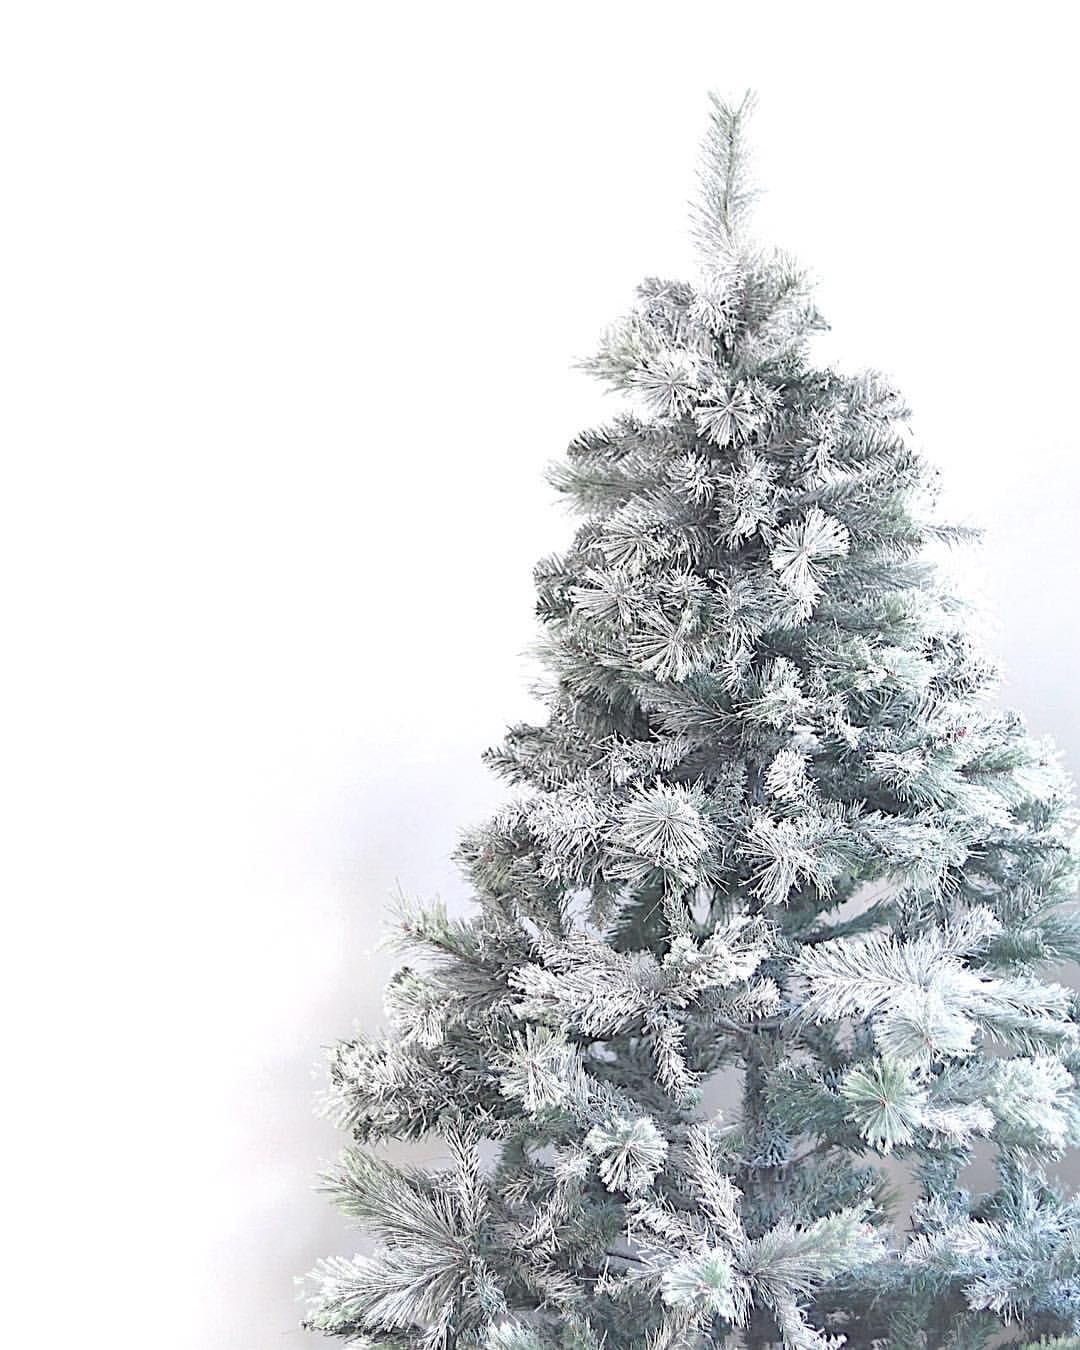 Did Anyone Else Miss Out On That Stunning Snowy Aspen Christmas Tree From Target Me Too So We Fixed Our Old Tree Up With Some Snow Spra Aspen Instagram Snowy